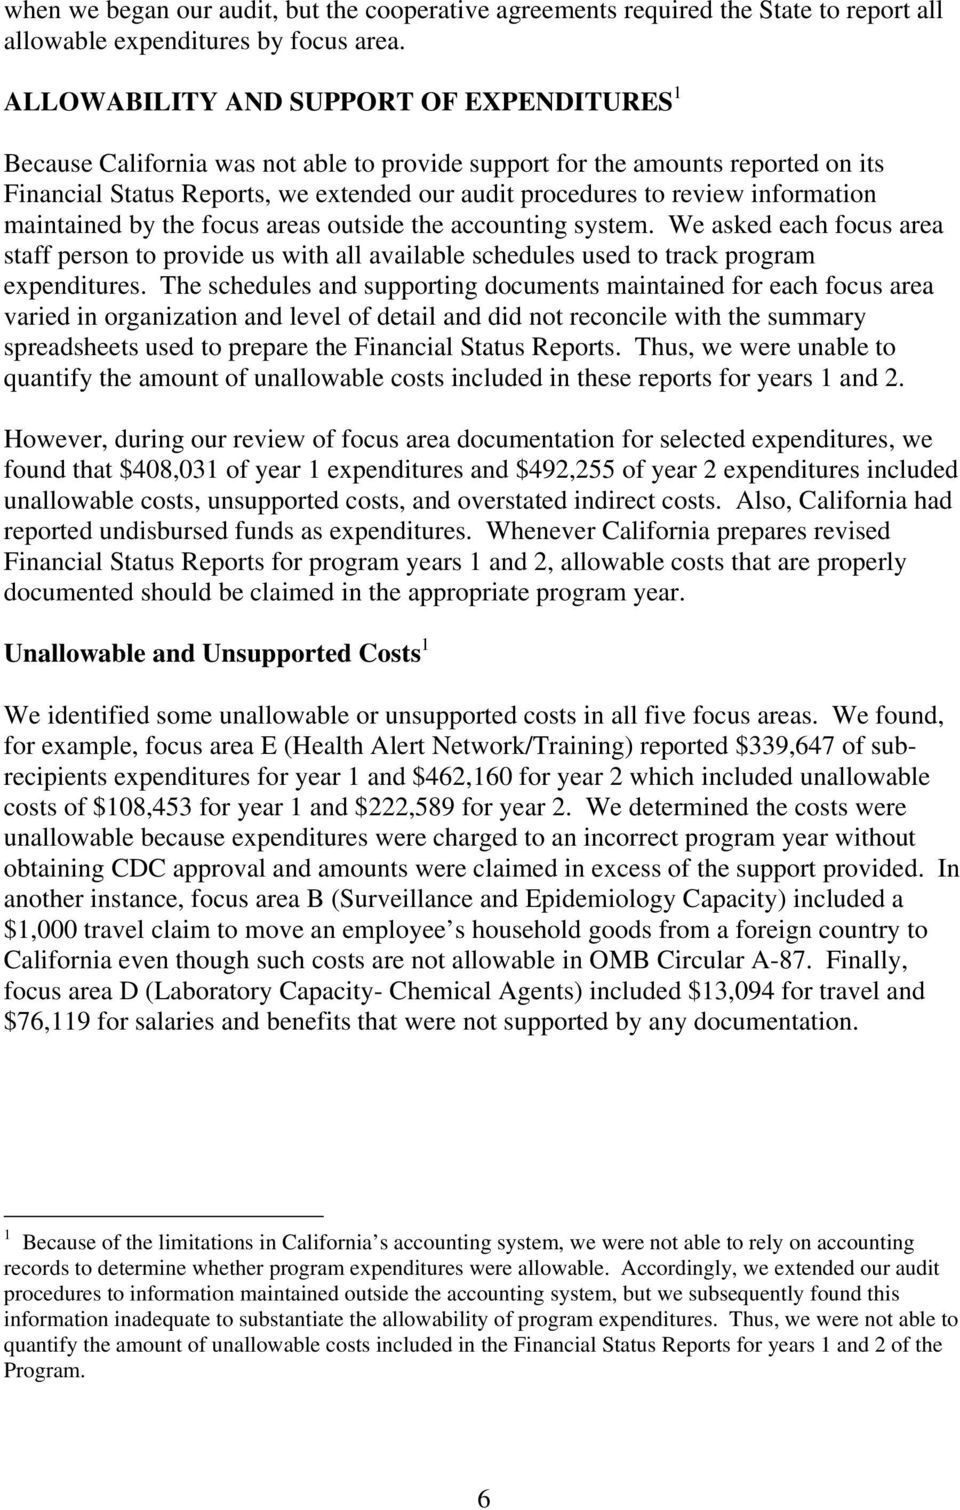 information maintained by the focus areas outside the accounting system. We asked each focus area staff person to provide us with all available schedules used to track program expenditures.